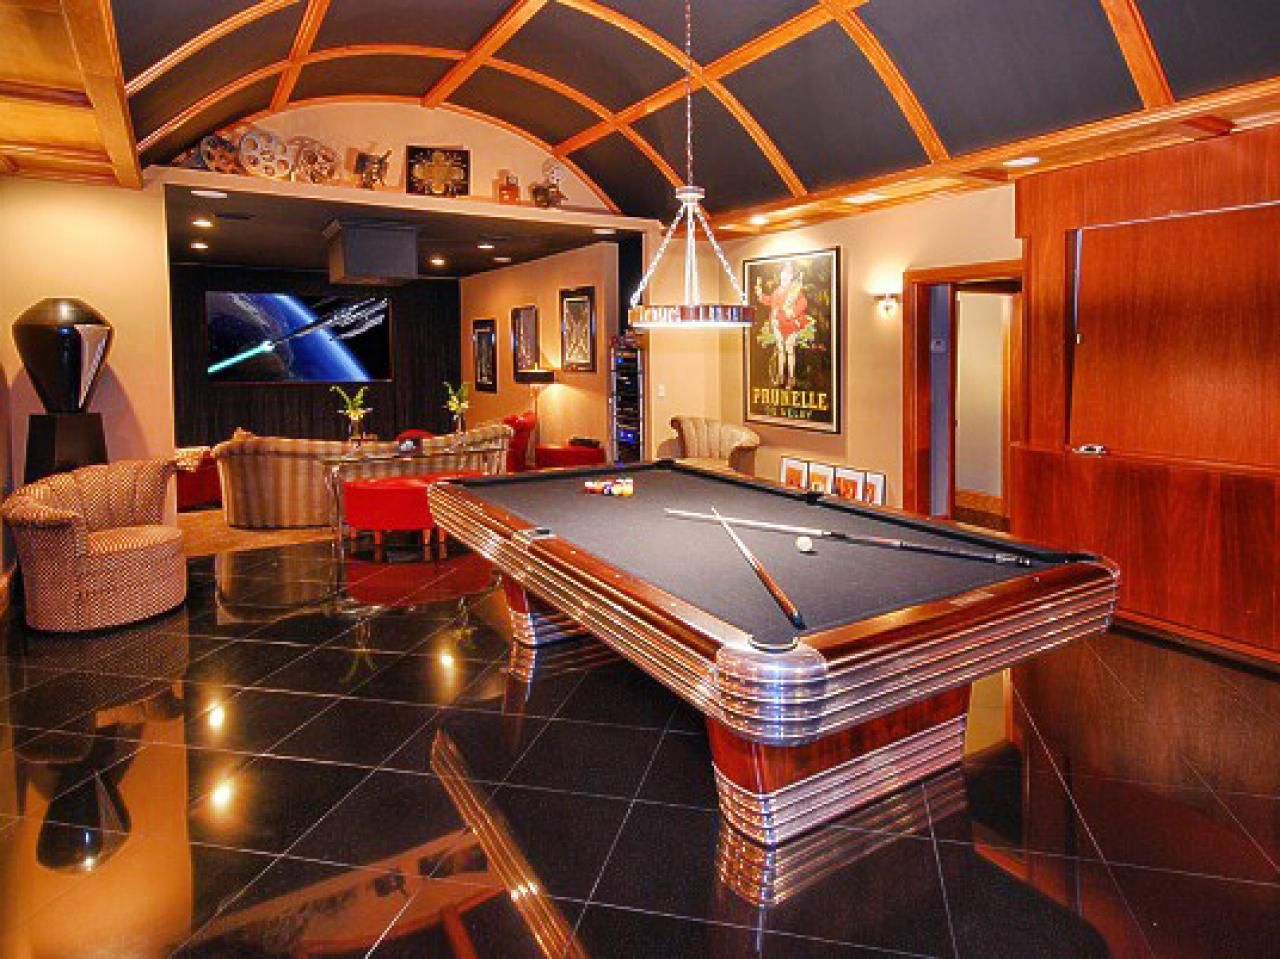 Dream house game room - Decoration Unique Decorations Home Theater Game Room Ideas 13 Modern Epictions Home Theater Game